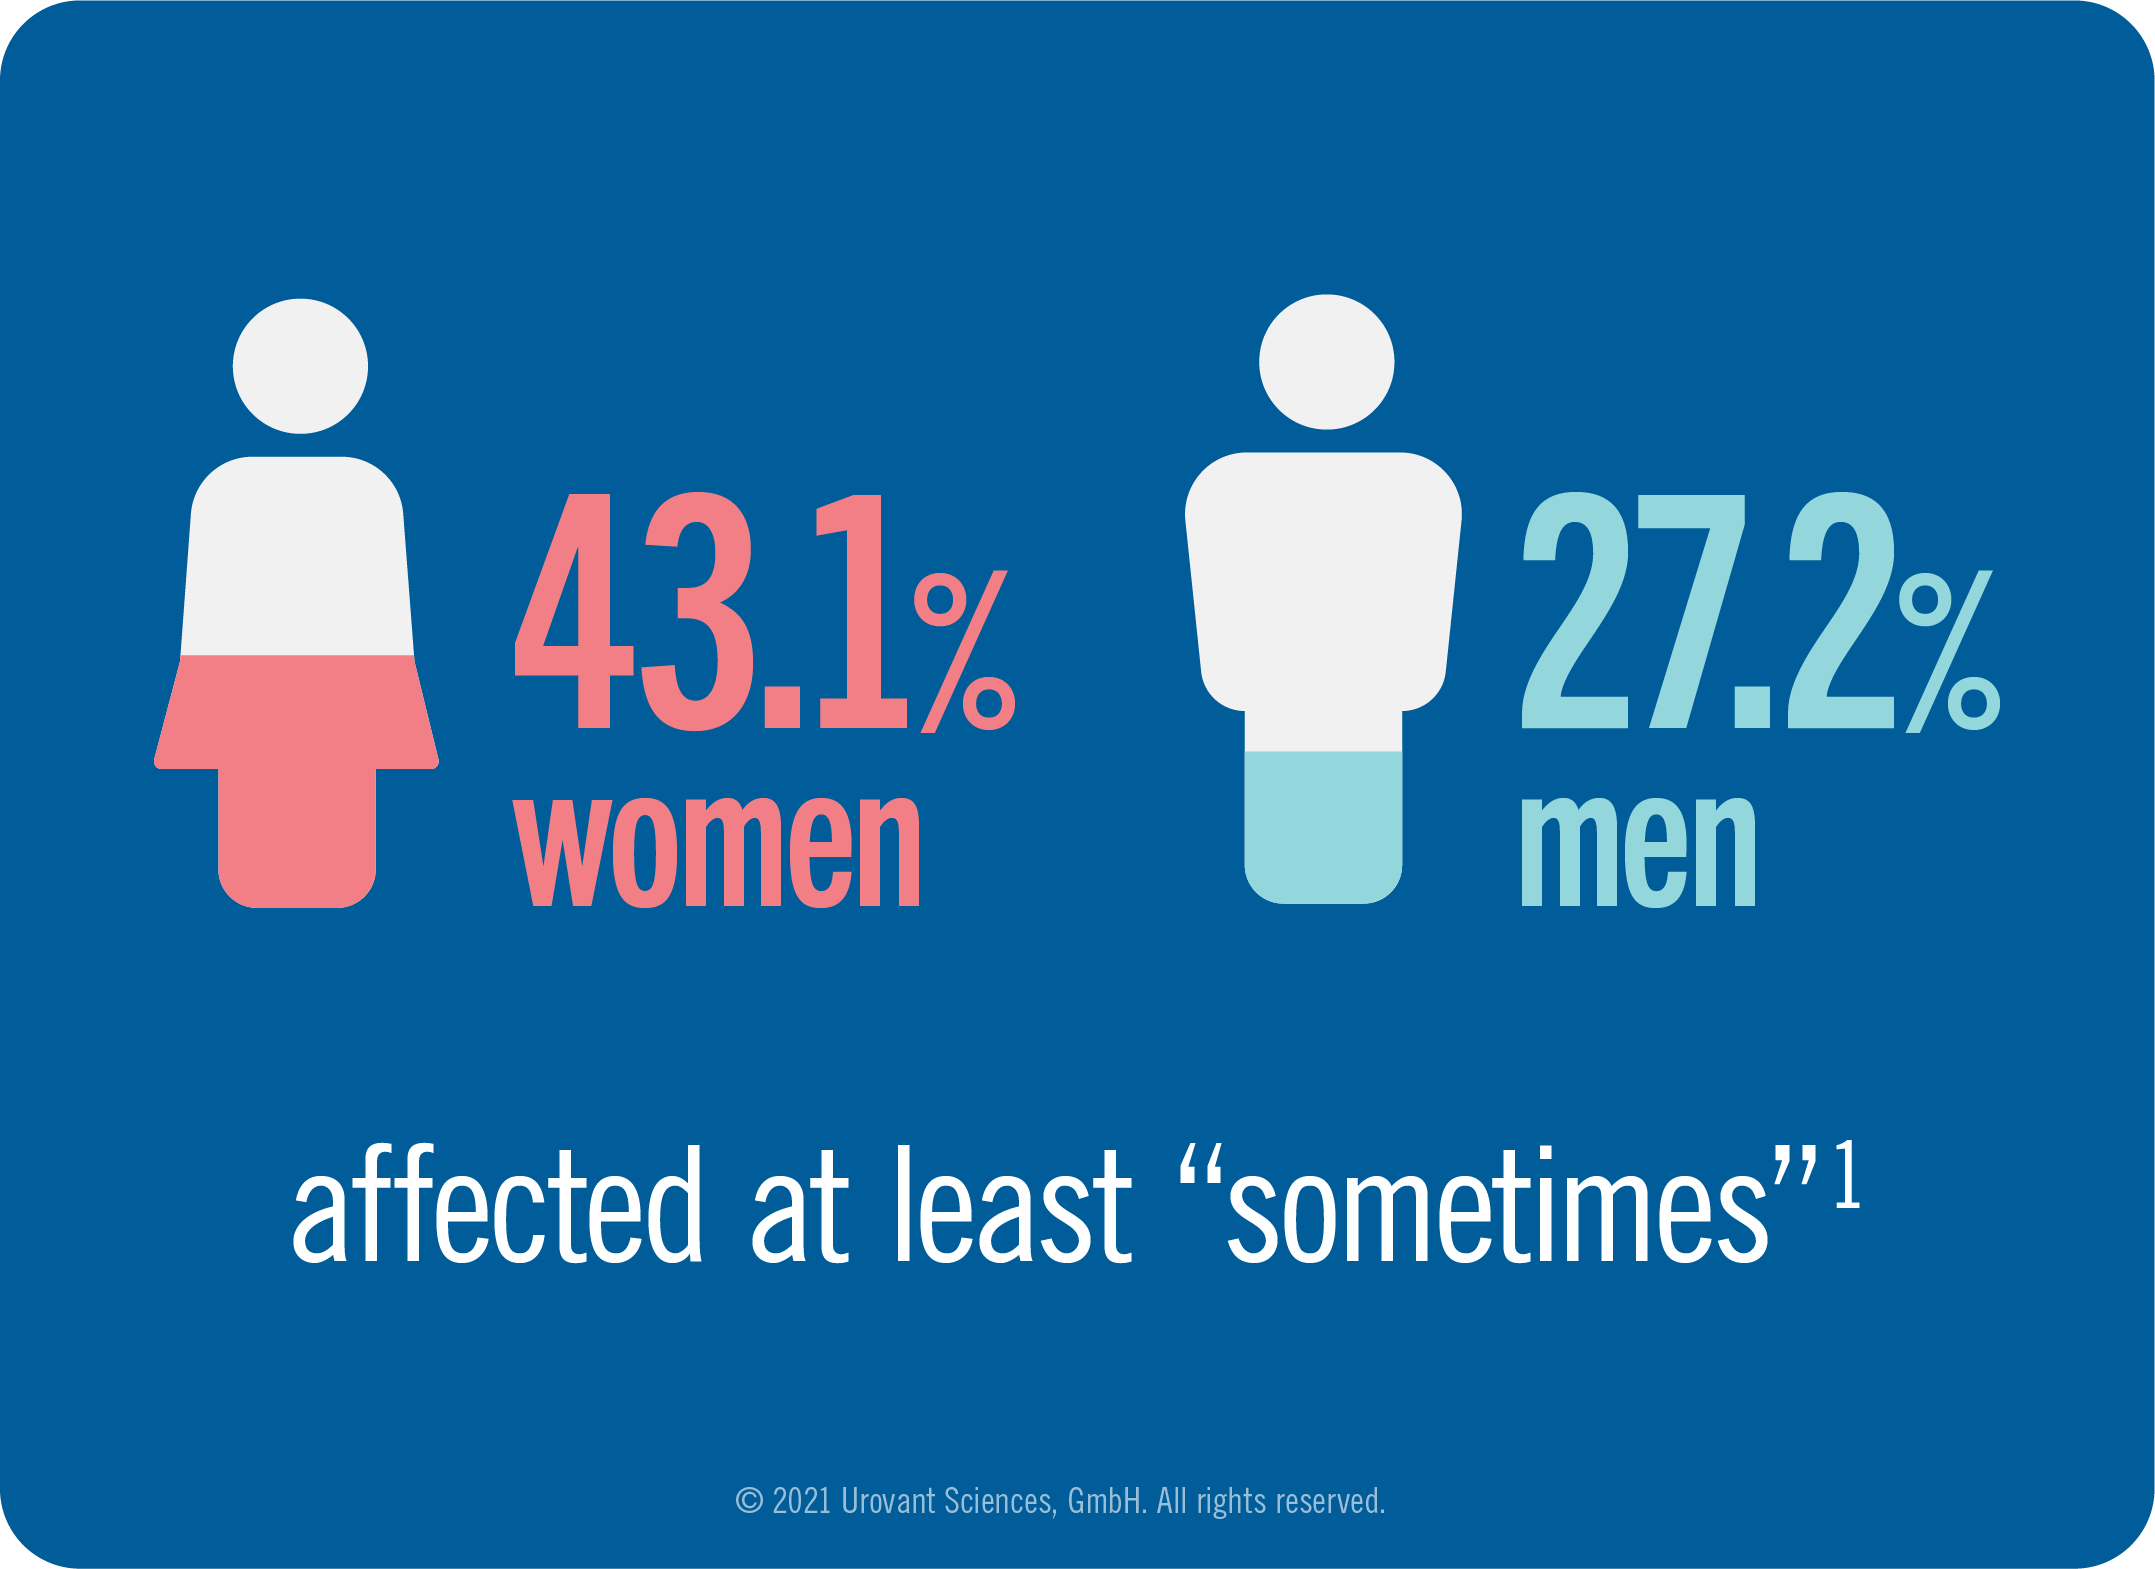 Infographic of percentage of woman and menaffected at least sometimes by overactive bladder symptoms